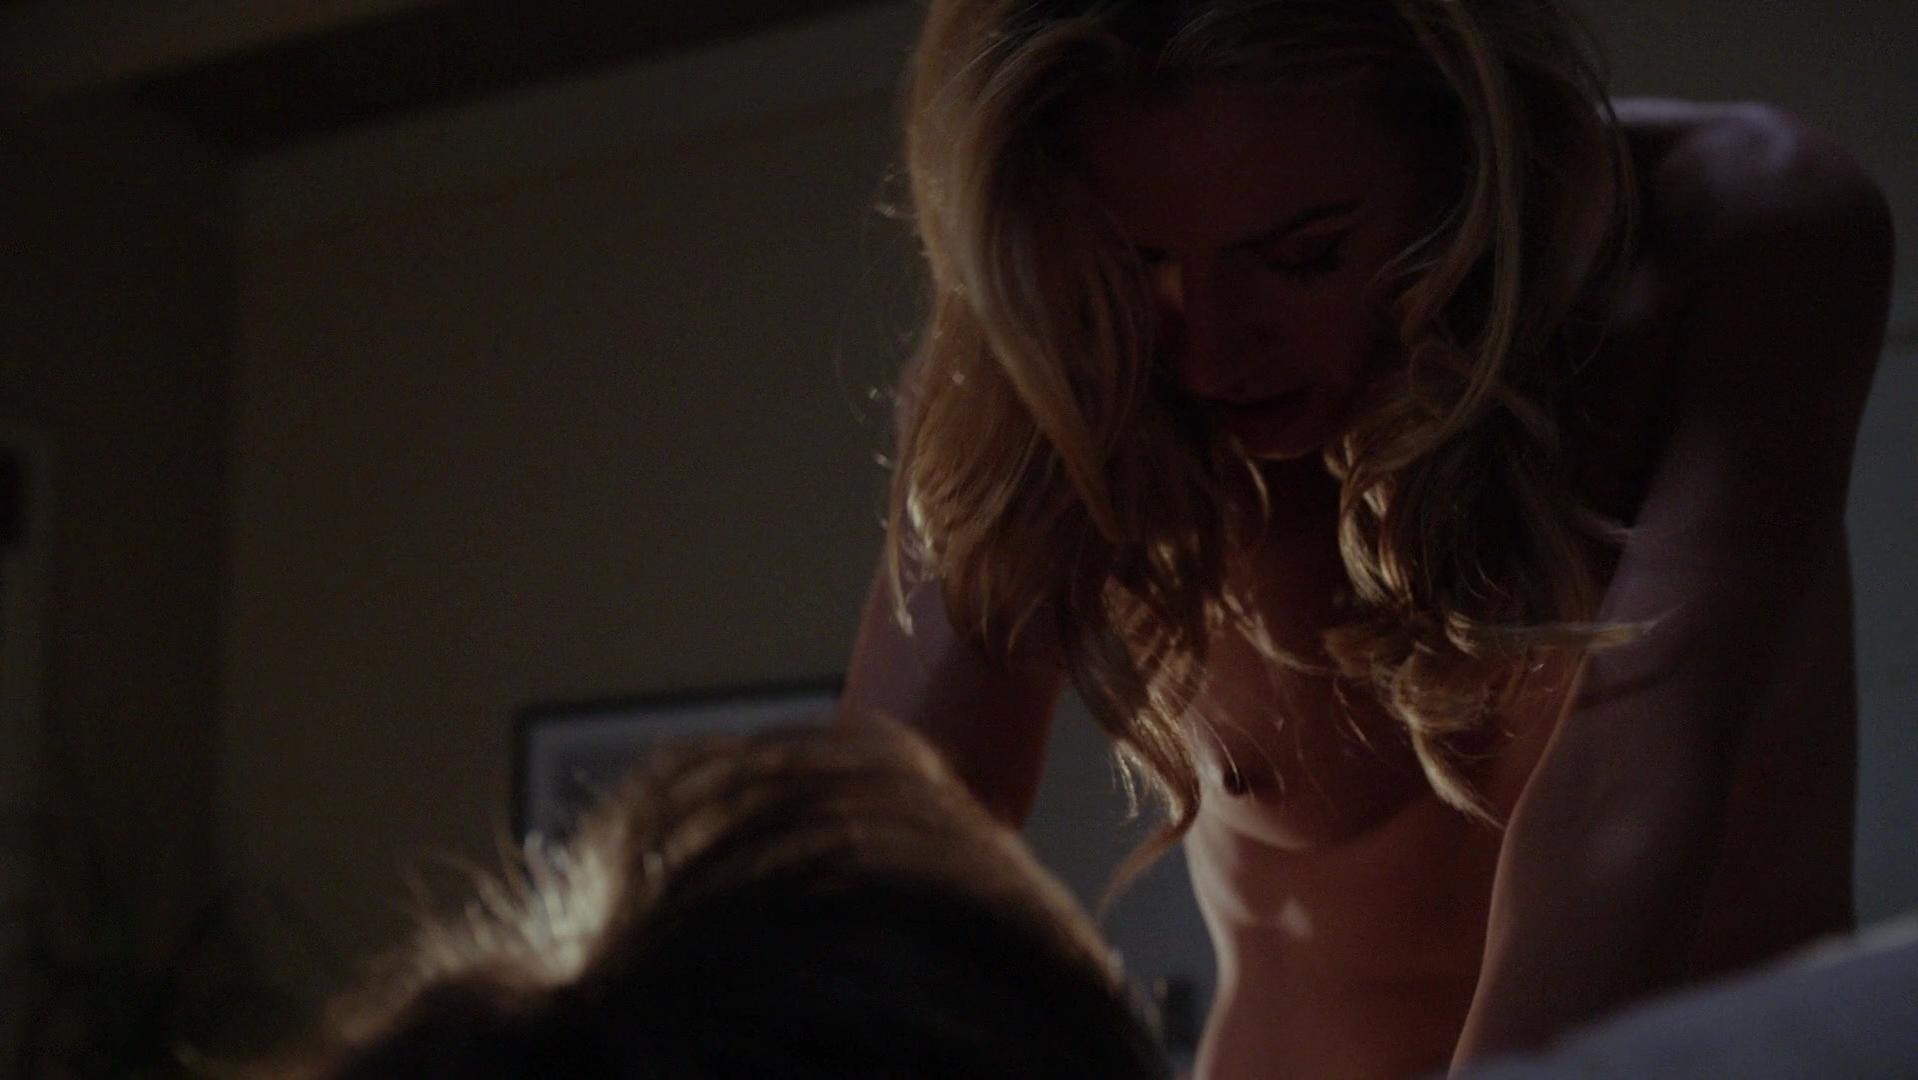 Allison McAtee nude - Californication s06e04 (2013)